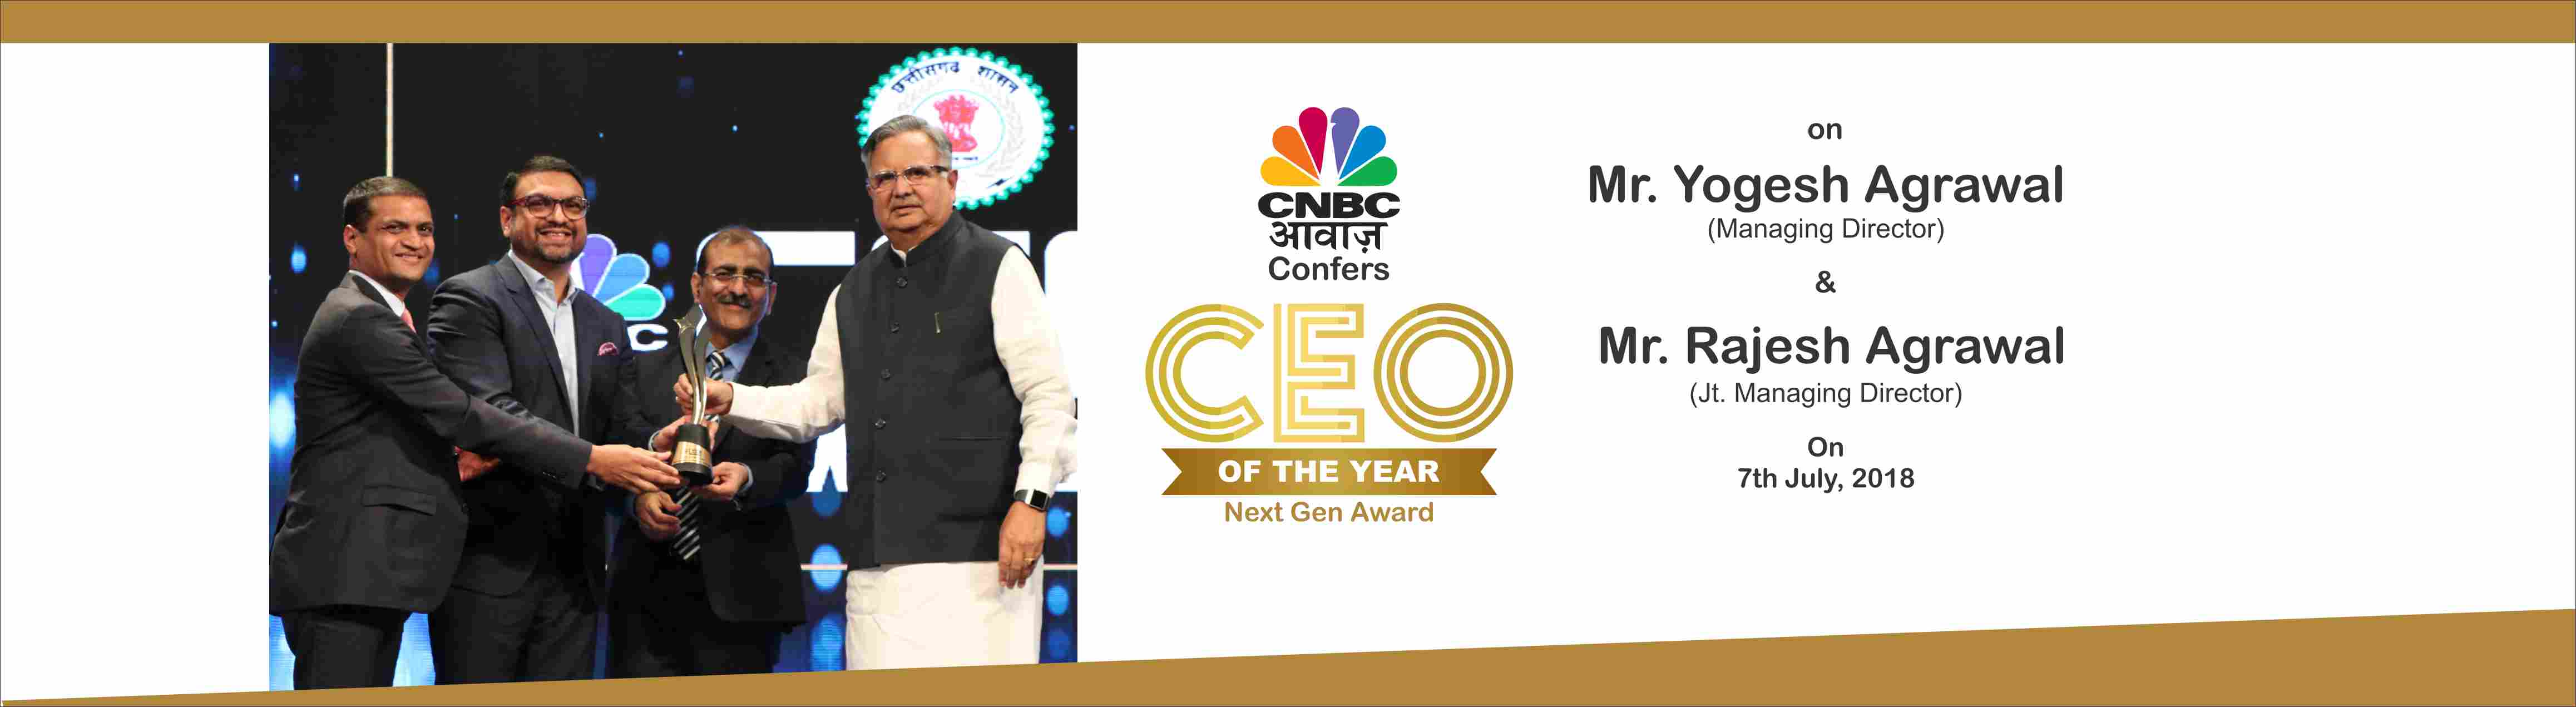 CEO OF THE YEAR CNBC 2018